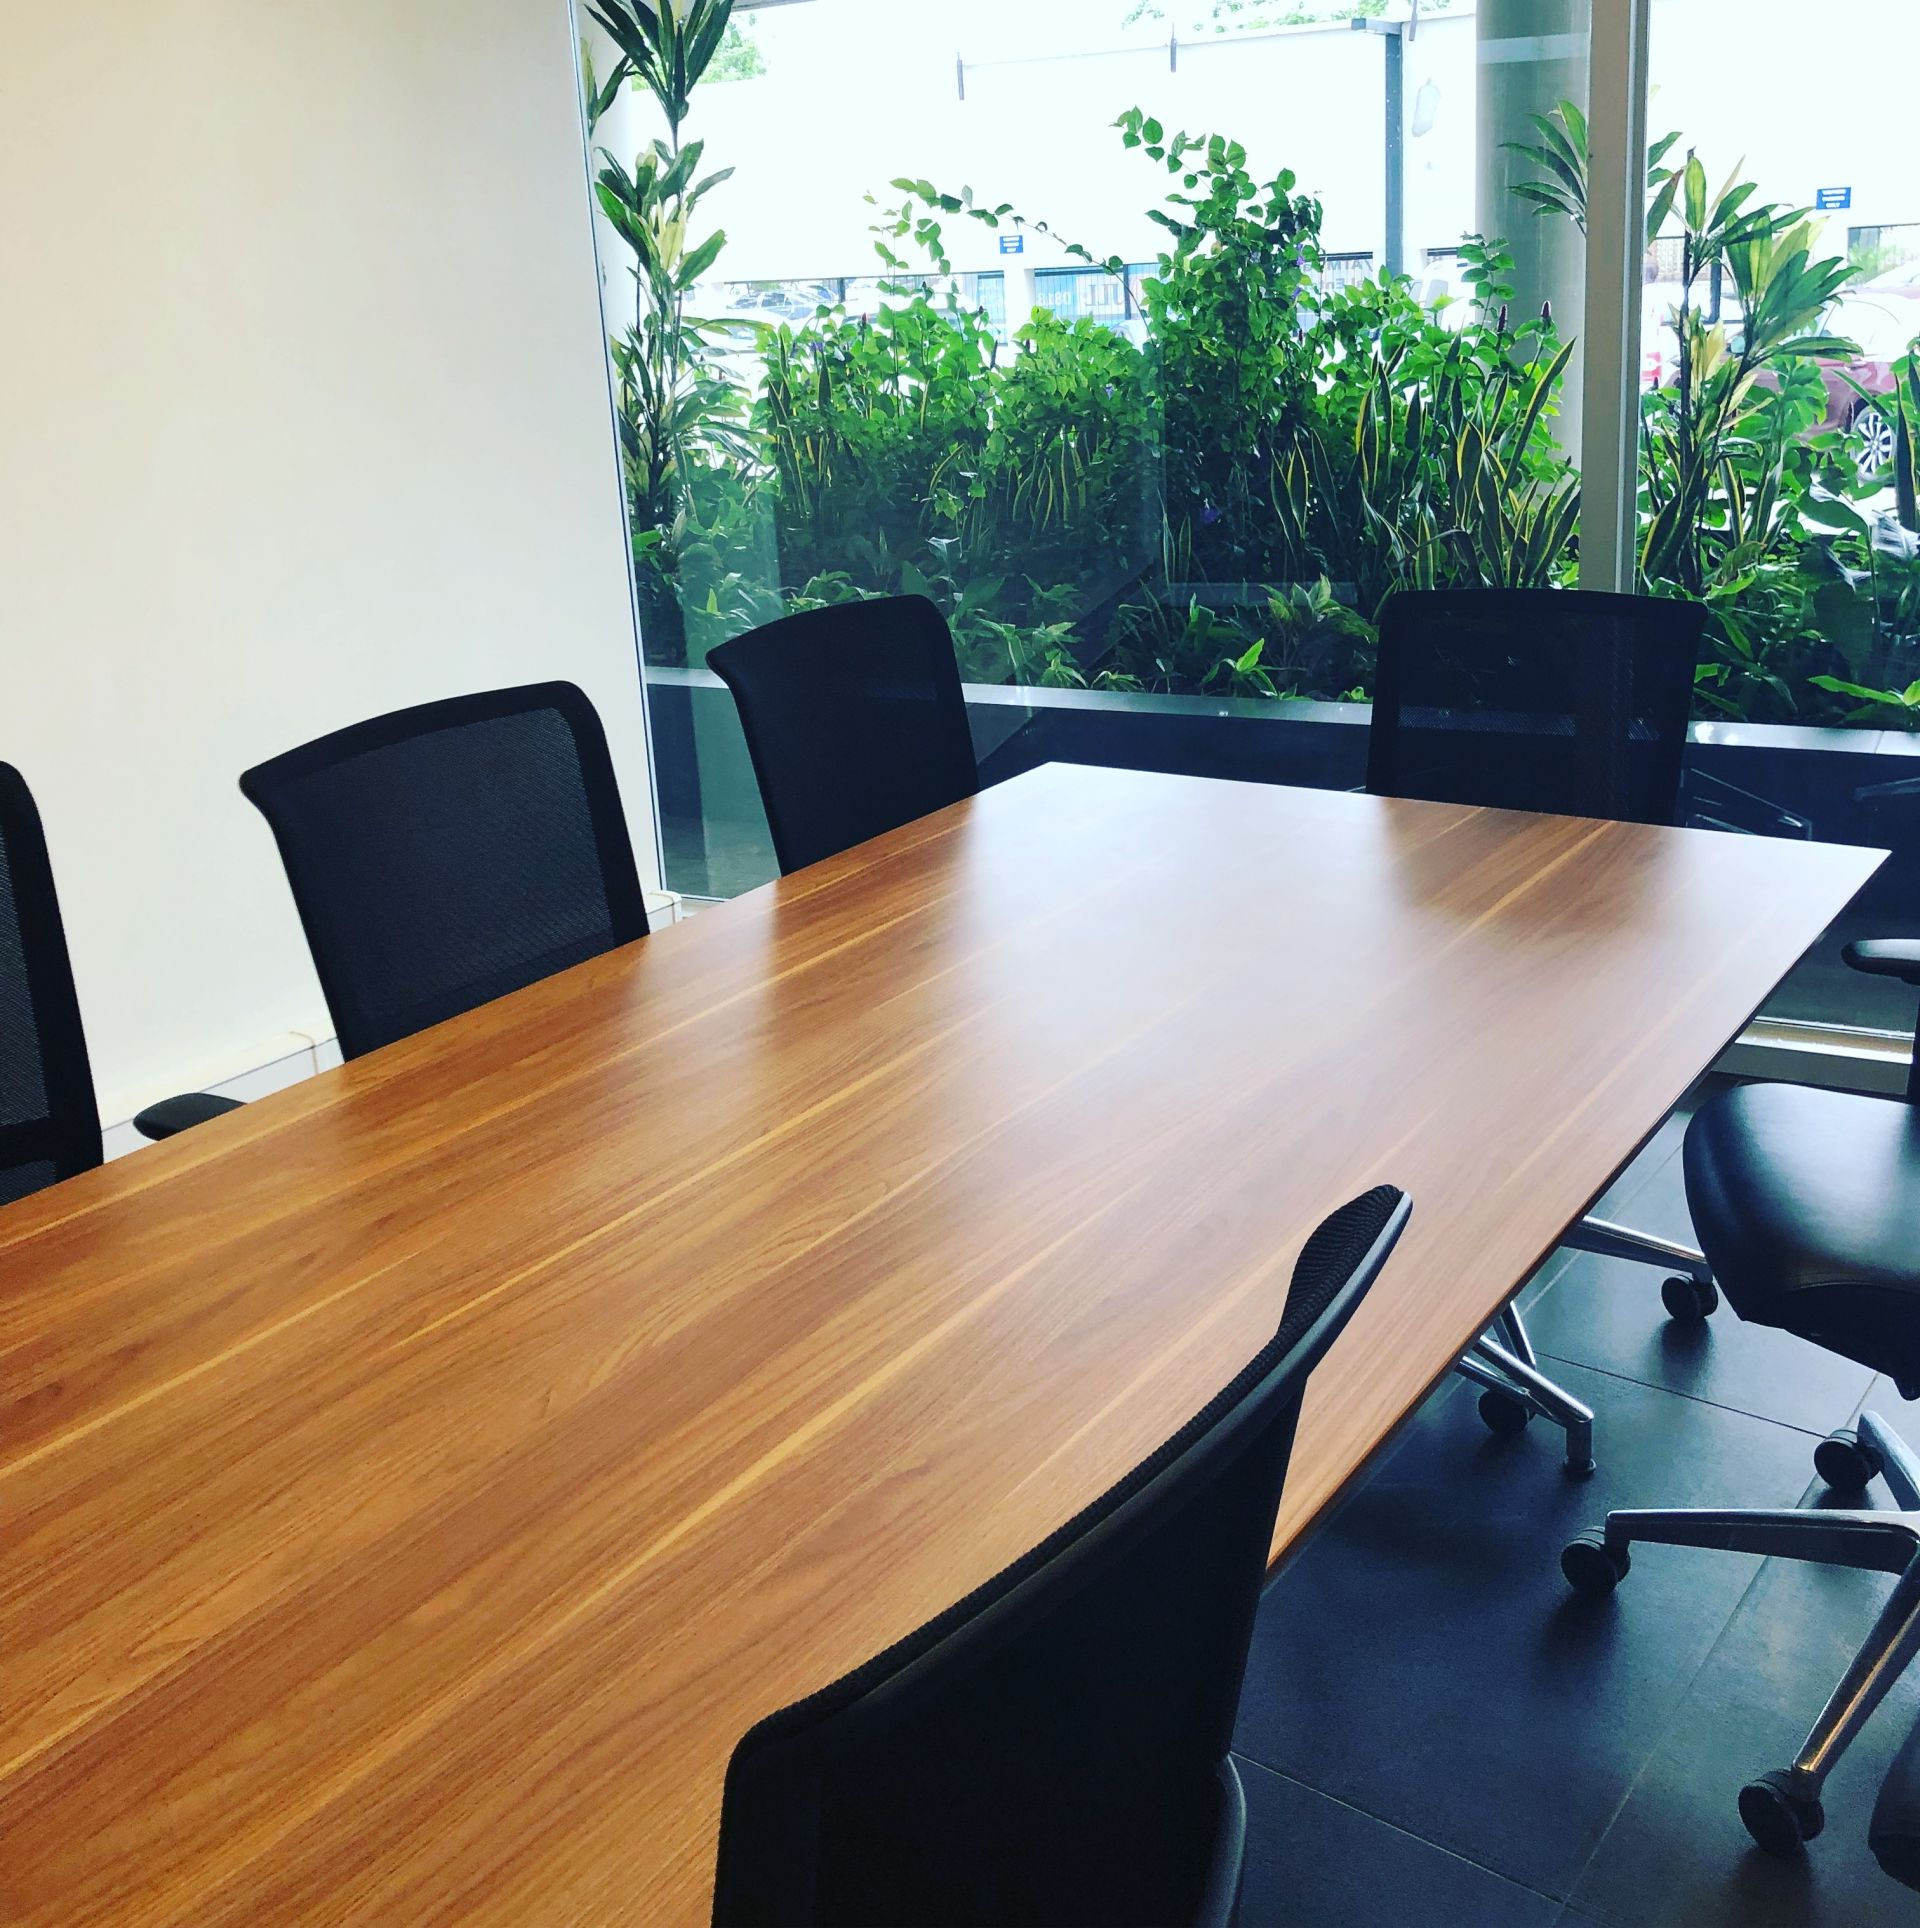 The Office, Lagos